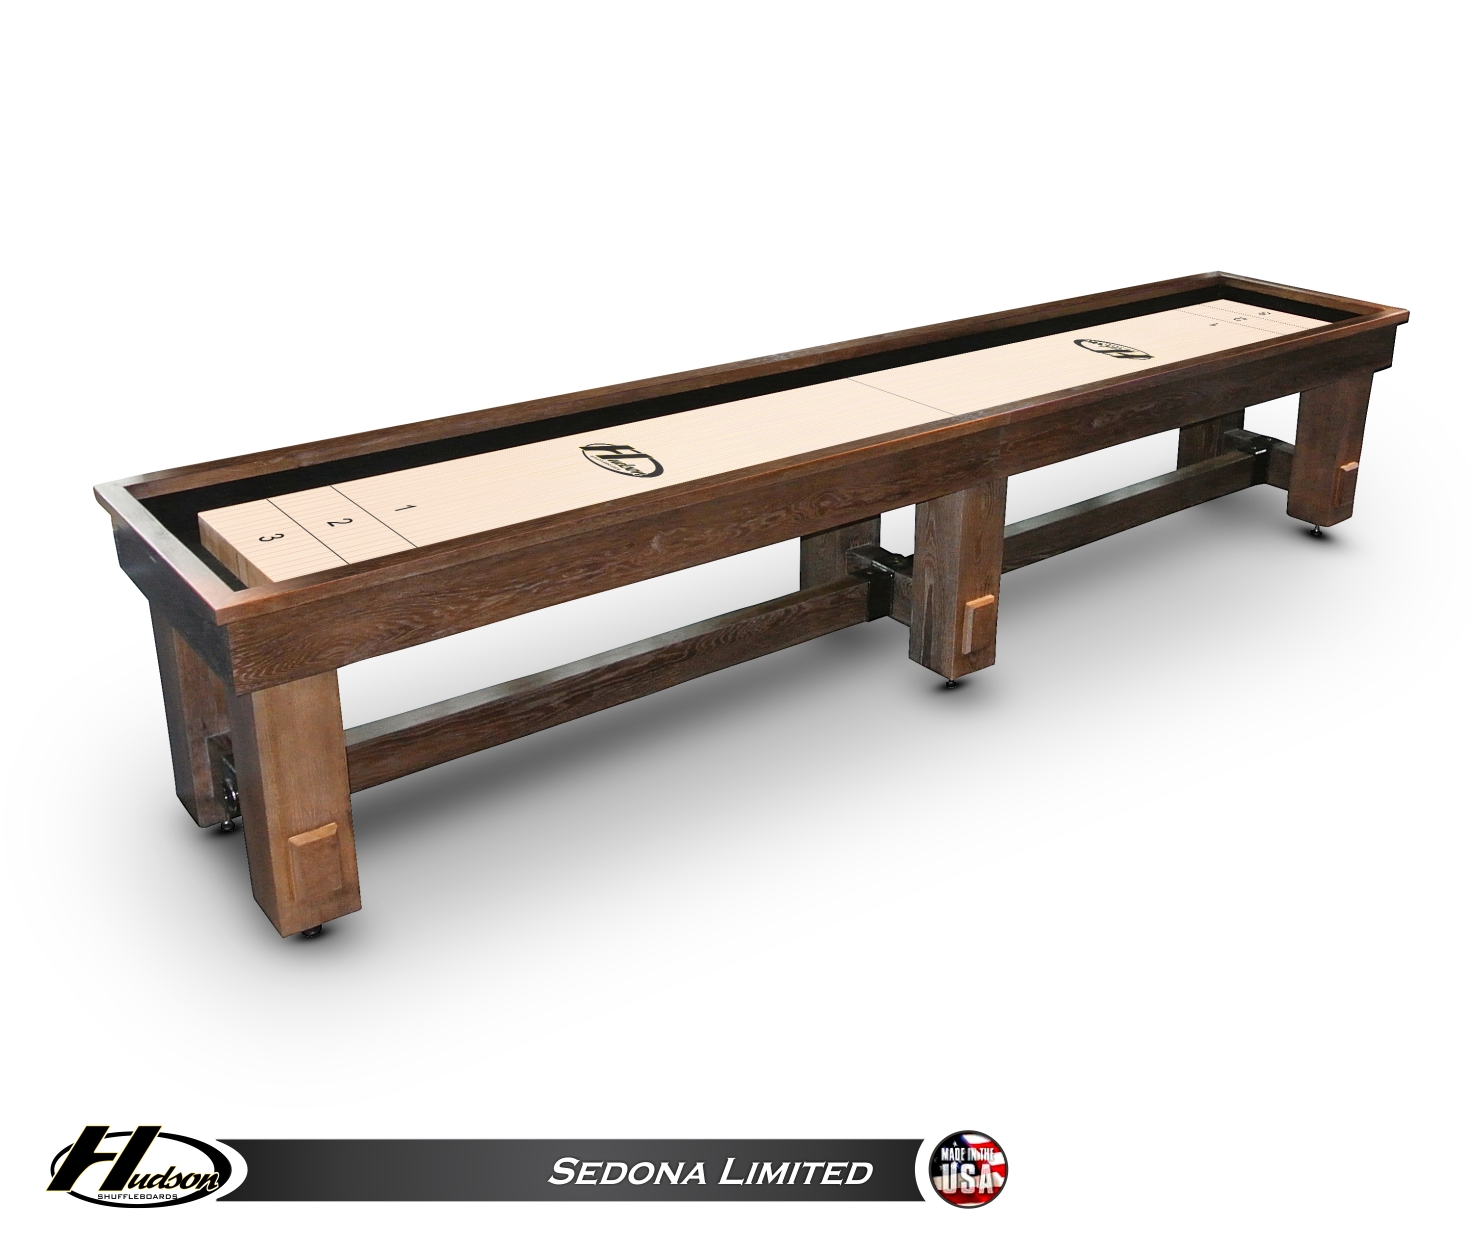 14' Hudson Sedona Limited Shuffleboard Table